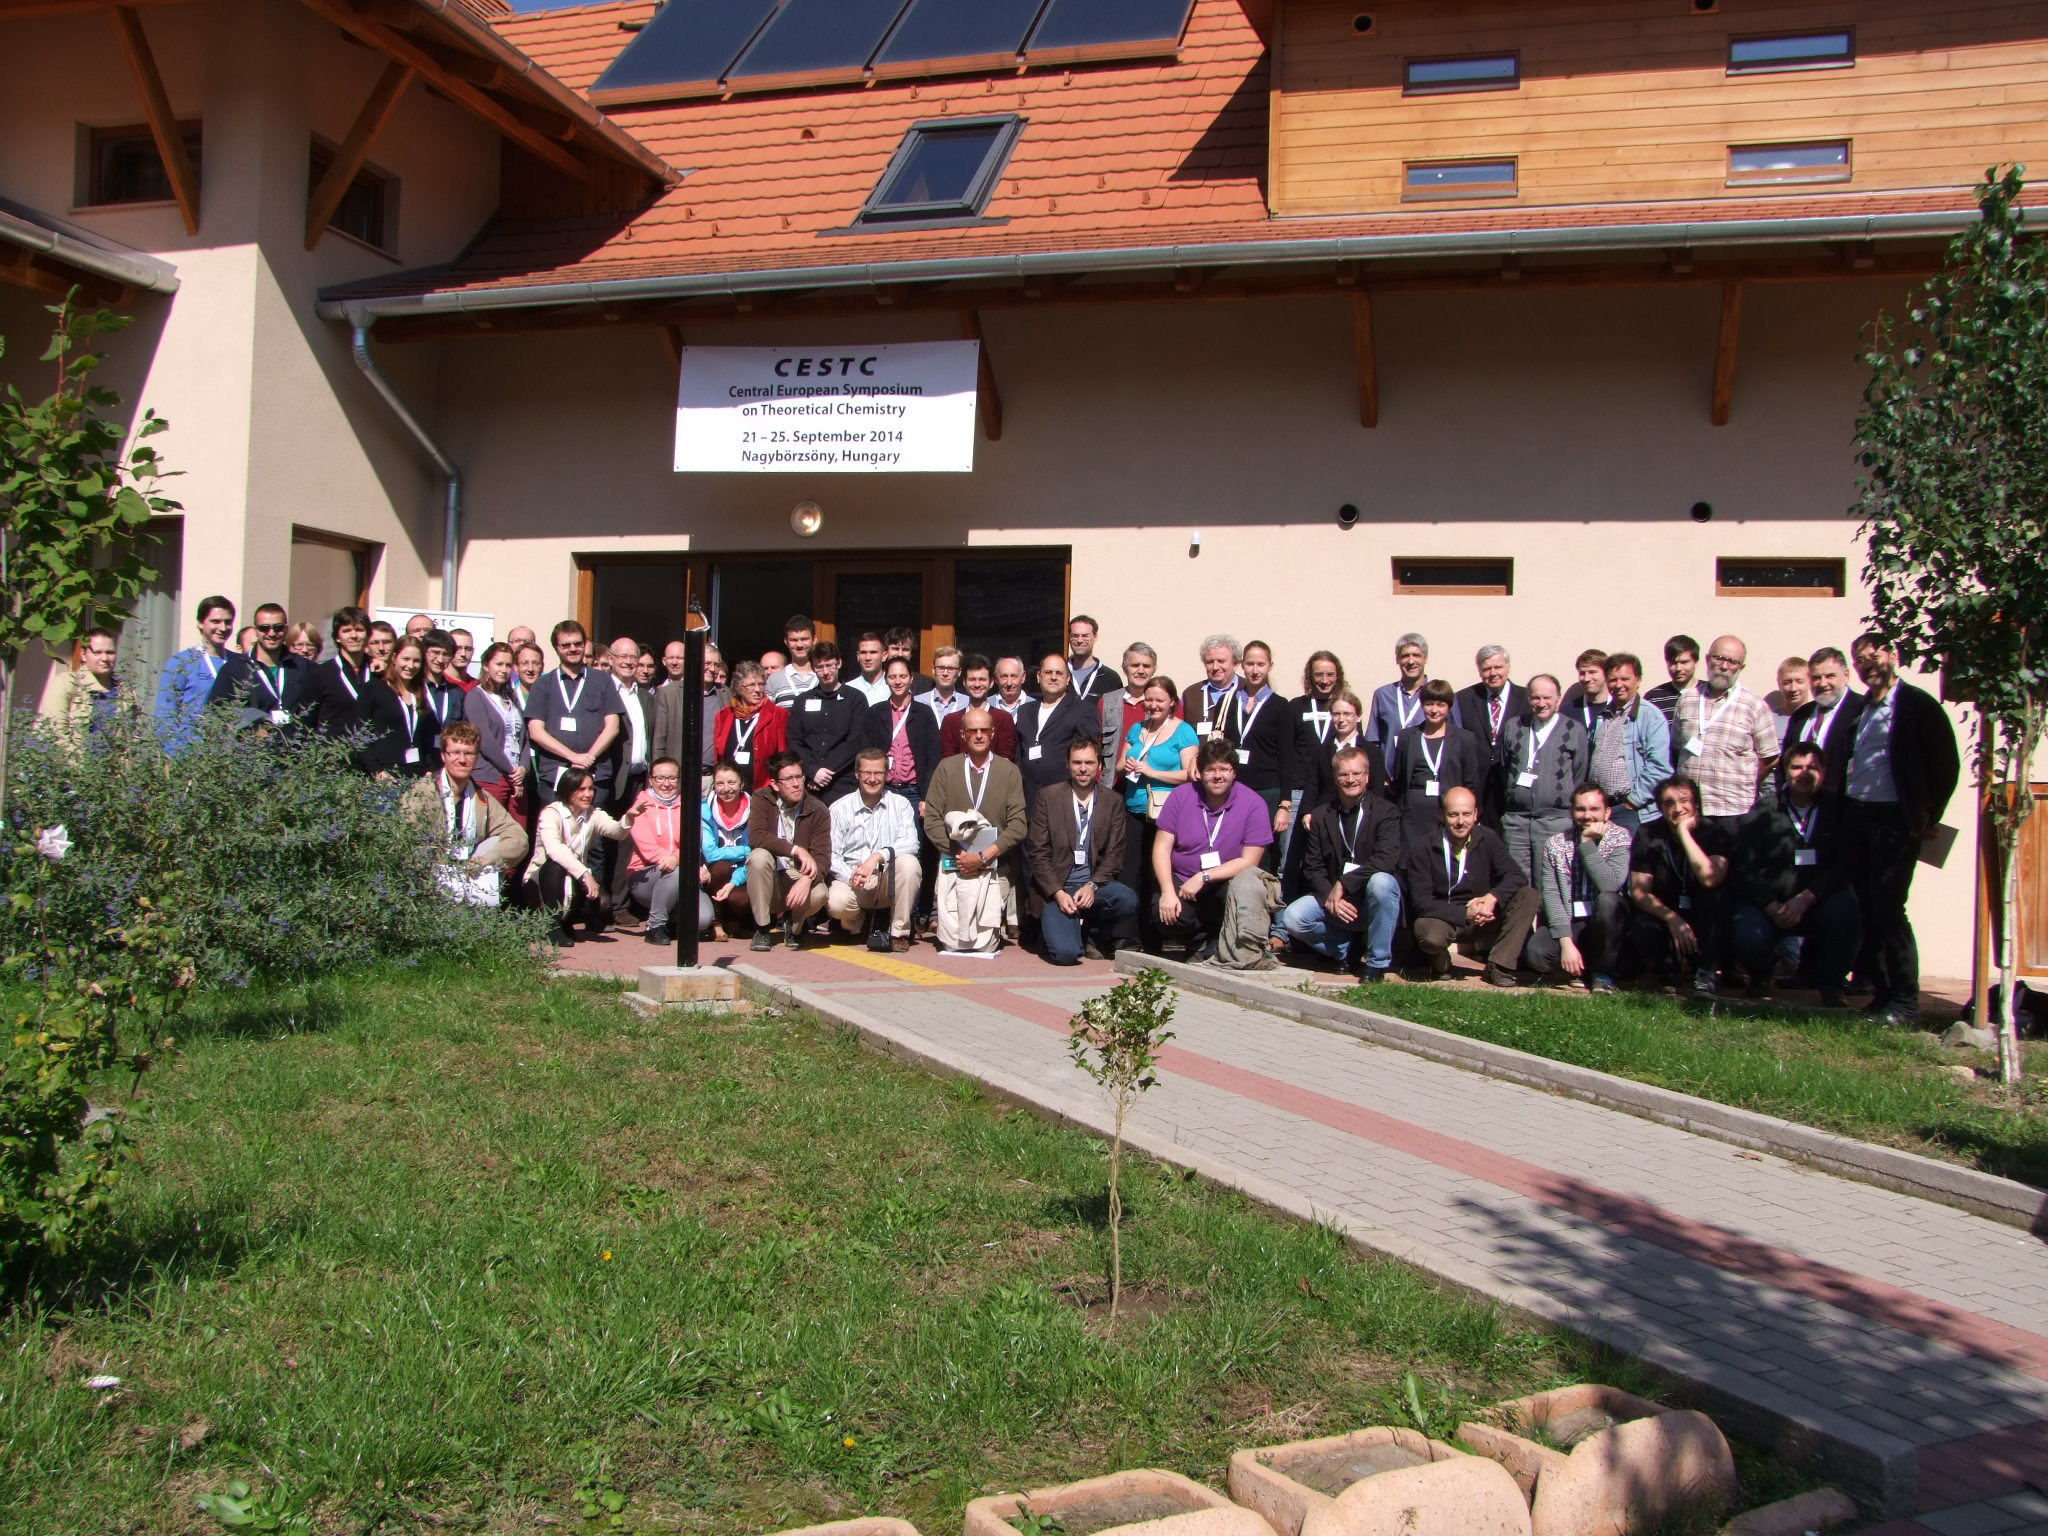 Central European Symposium on Theoretical Chemistry 2014